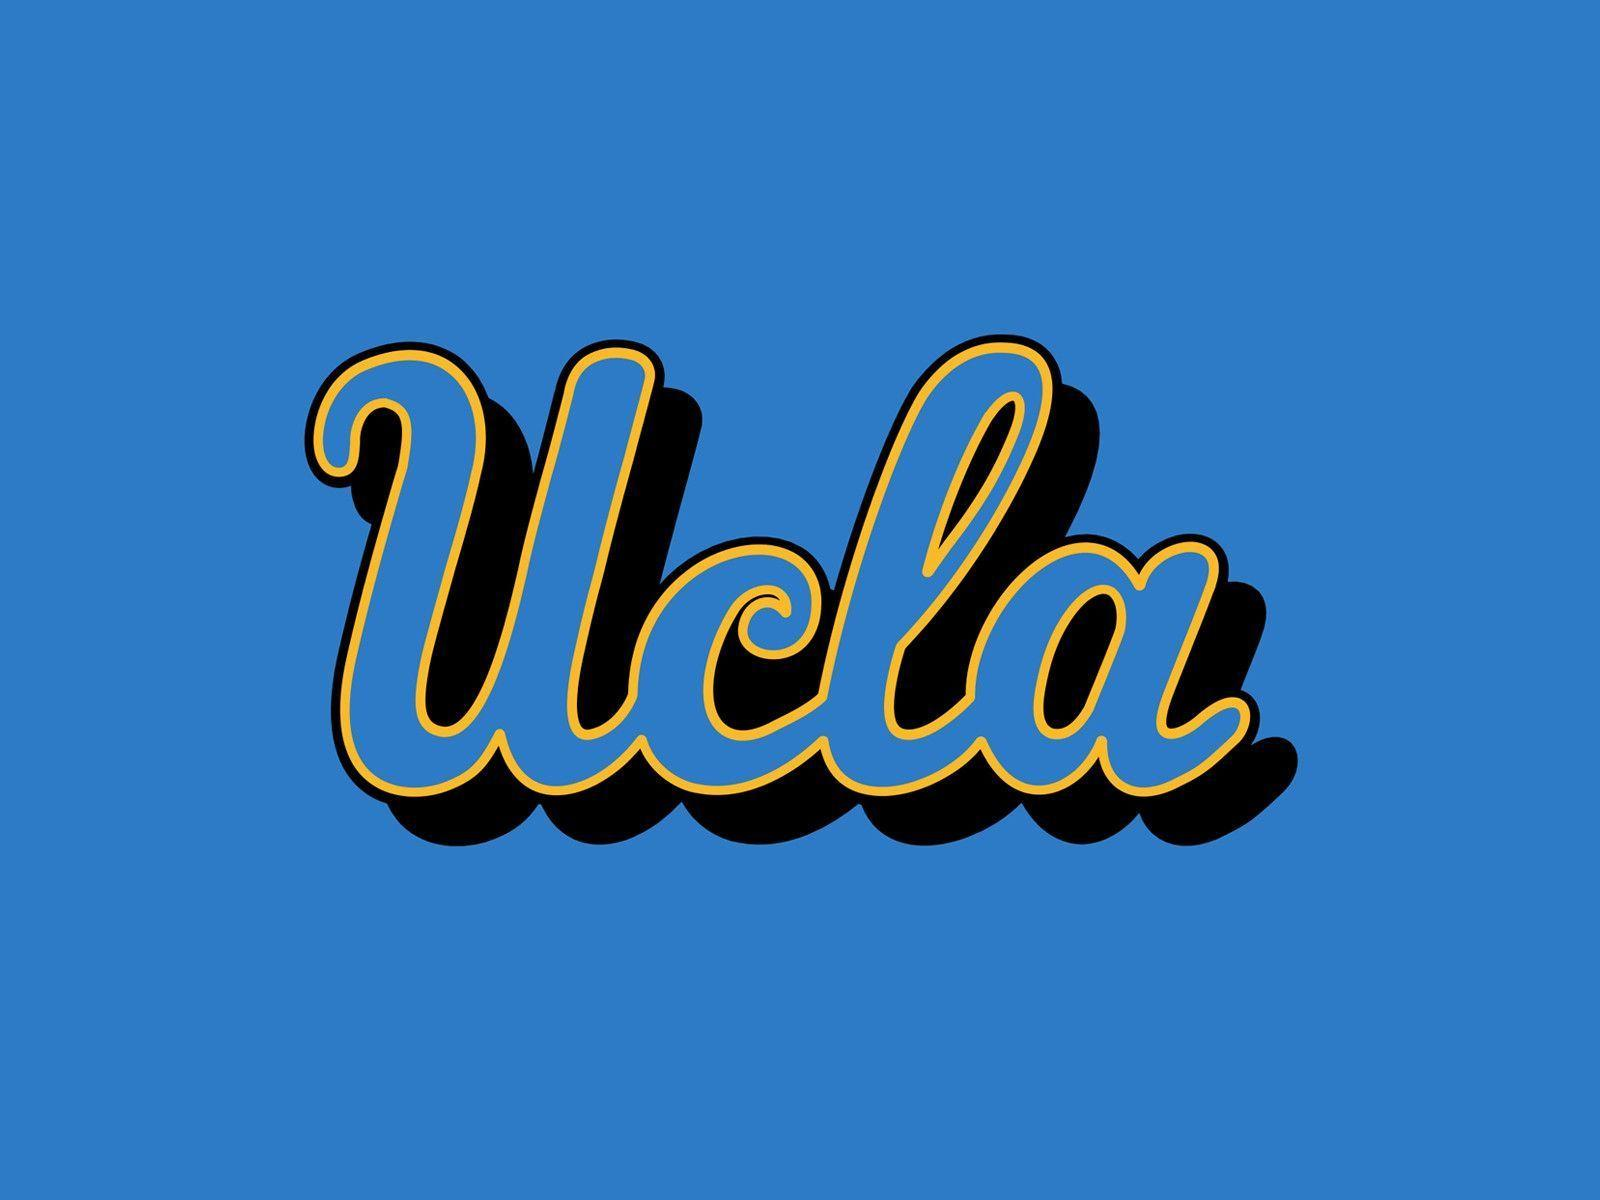 ucla wallpapers wallpaper cave